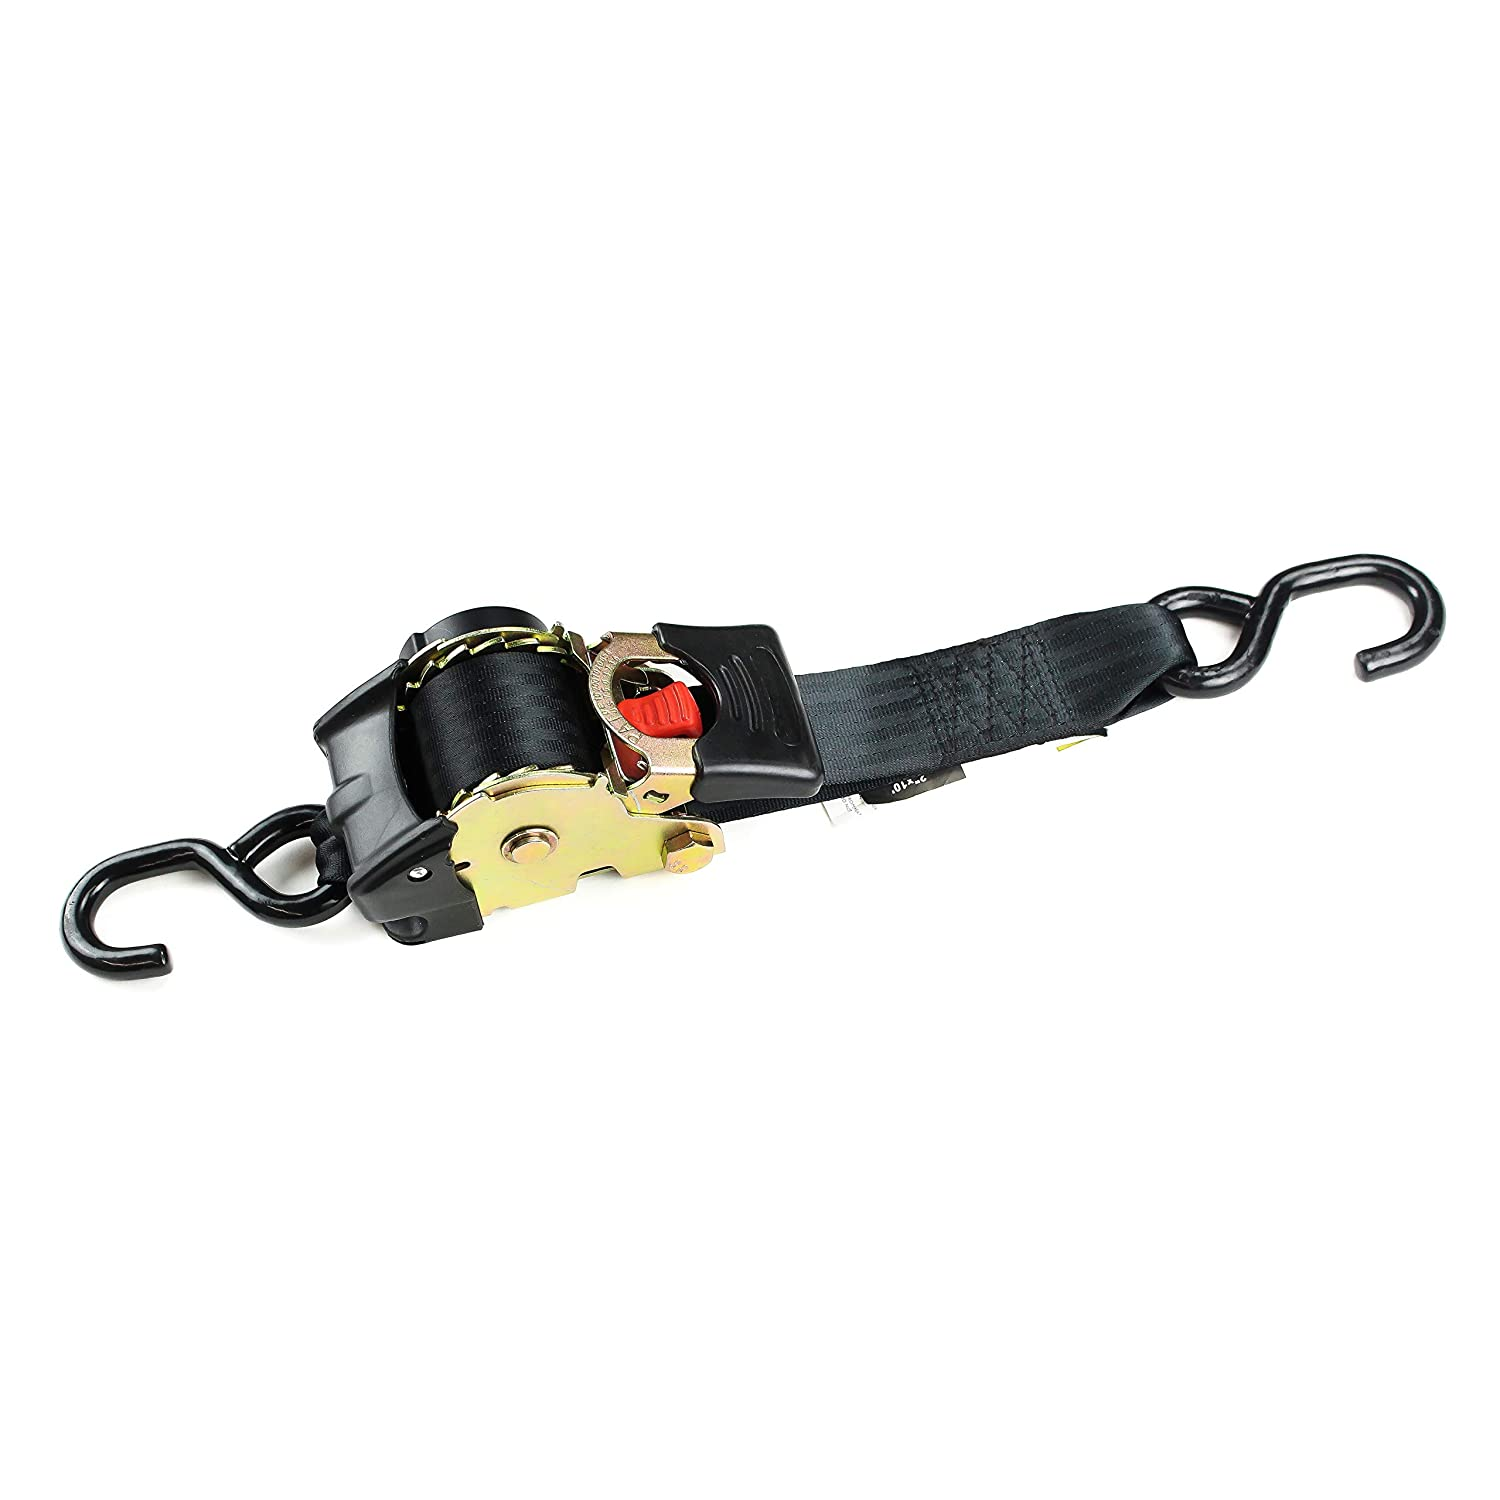 Bikes: Tight /& Secure Pickup Trailer Tie-Down DC Cargo Mall 1 x 10 SELF-CONTAINED Compact Cargo Strap Tiedowns for Motorcycles 2 Auto Retract NO-RATCHETING Ratchet Straps w//Soft Loop ATVs